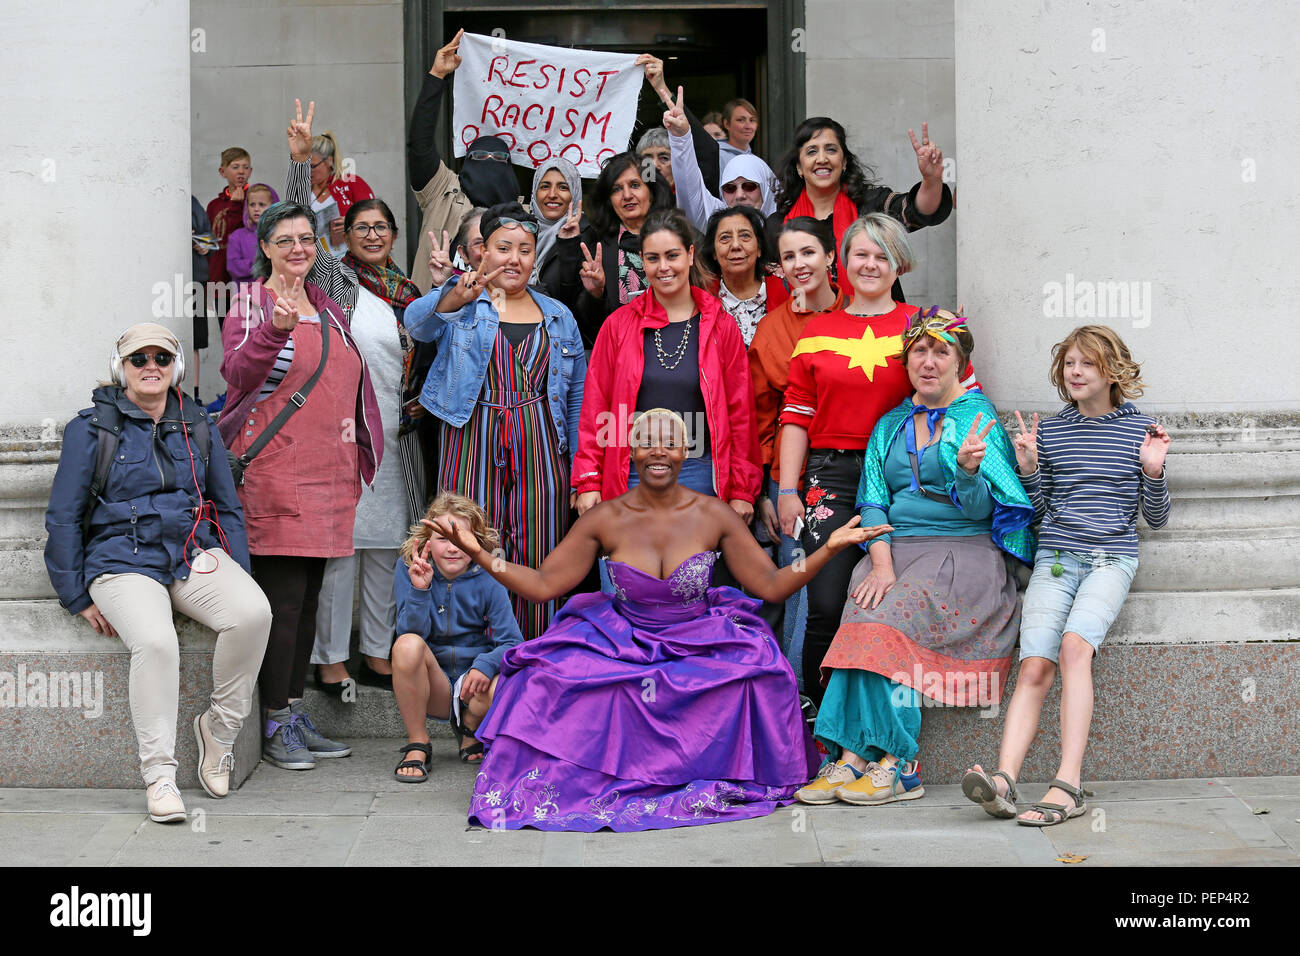 Manchester, UK. 16th August 2018. A group of women gather in a show of solidarity and to send out a message of  'Enough is Enough' chanting 'Our clothes our choice'  in response to Boris Johnson and his comments on women wearing the Burqa. St Peters Square, Manchester  16th August, 2018 (C)Barbara Cook/Alamy Live News - Stock Image